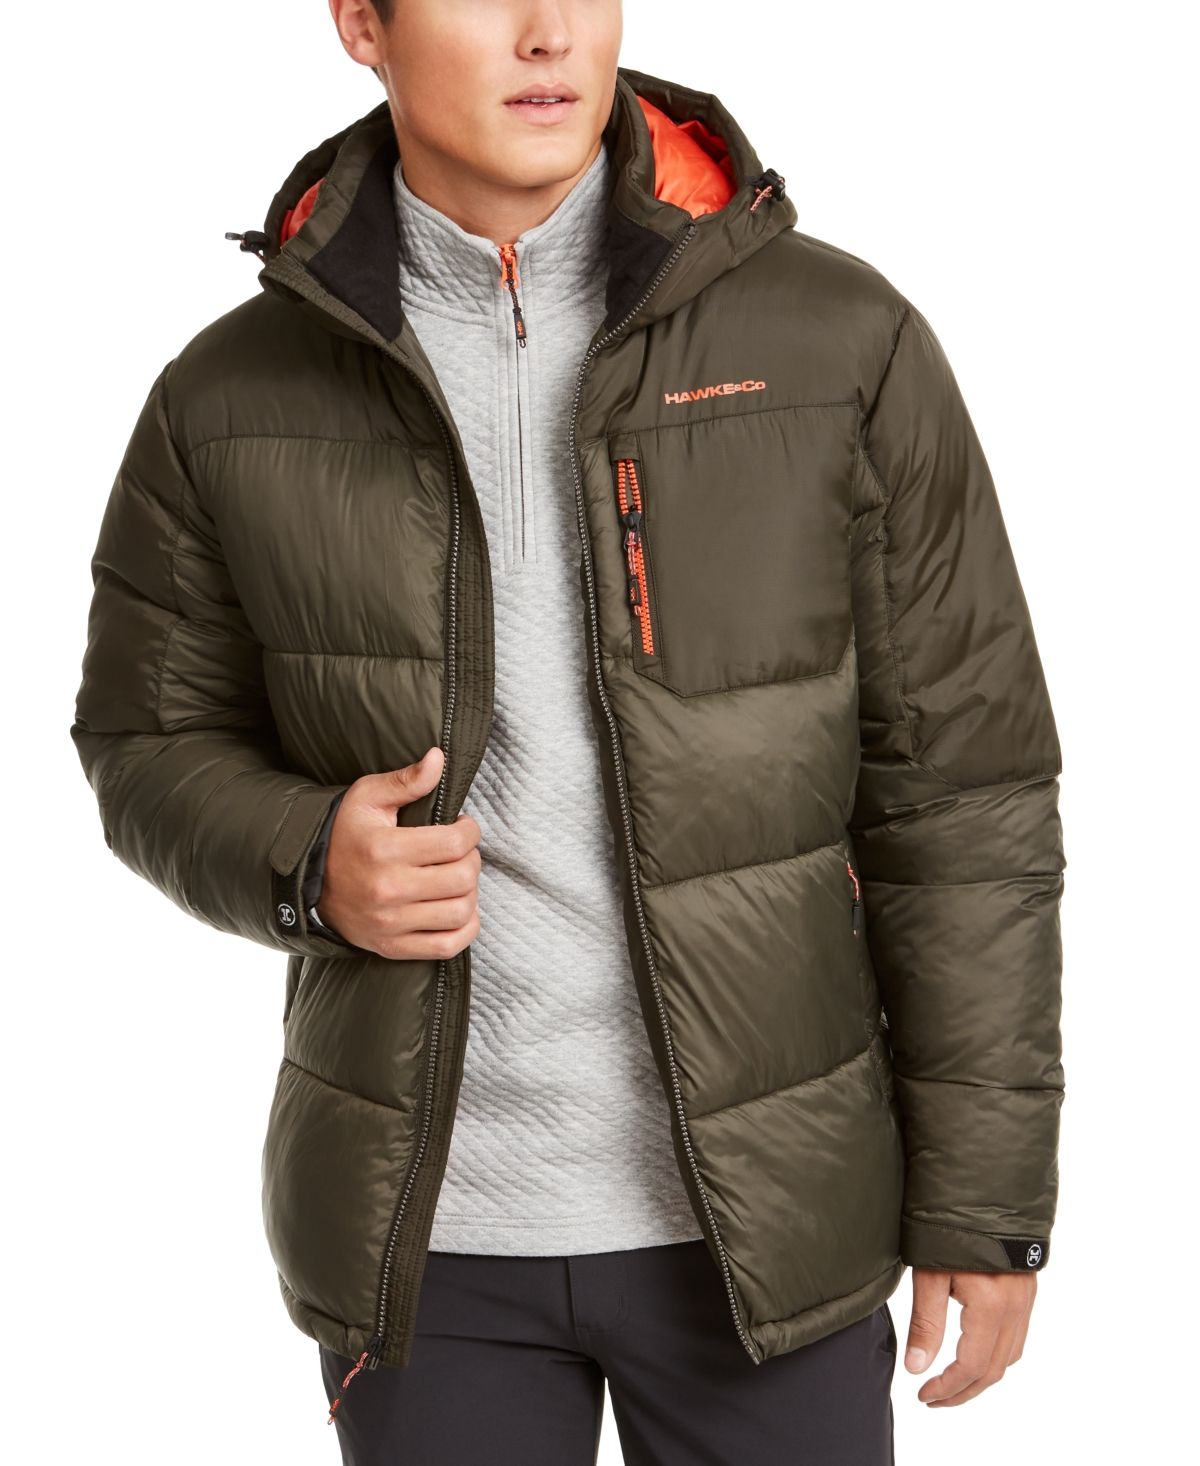 Hawke Co Outfitter Men S Puffer Jacket Created For Macy S Reviews Coats Jackets Men Macy S In 2021 Mens Puffer Jacket Mens Outfitters Mens Jackets [ 1466 x 1200 Pixel ]